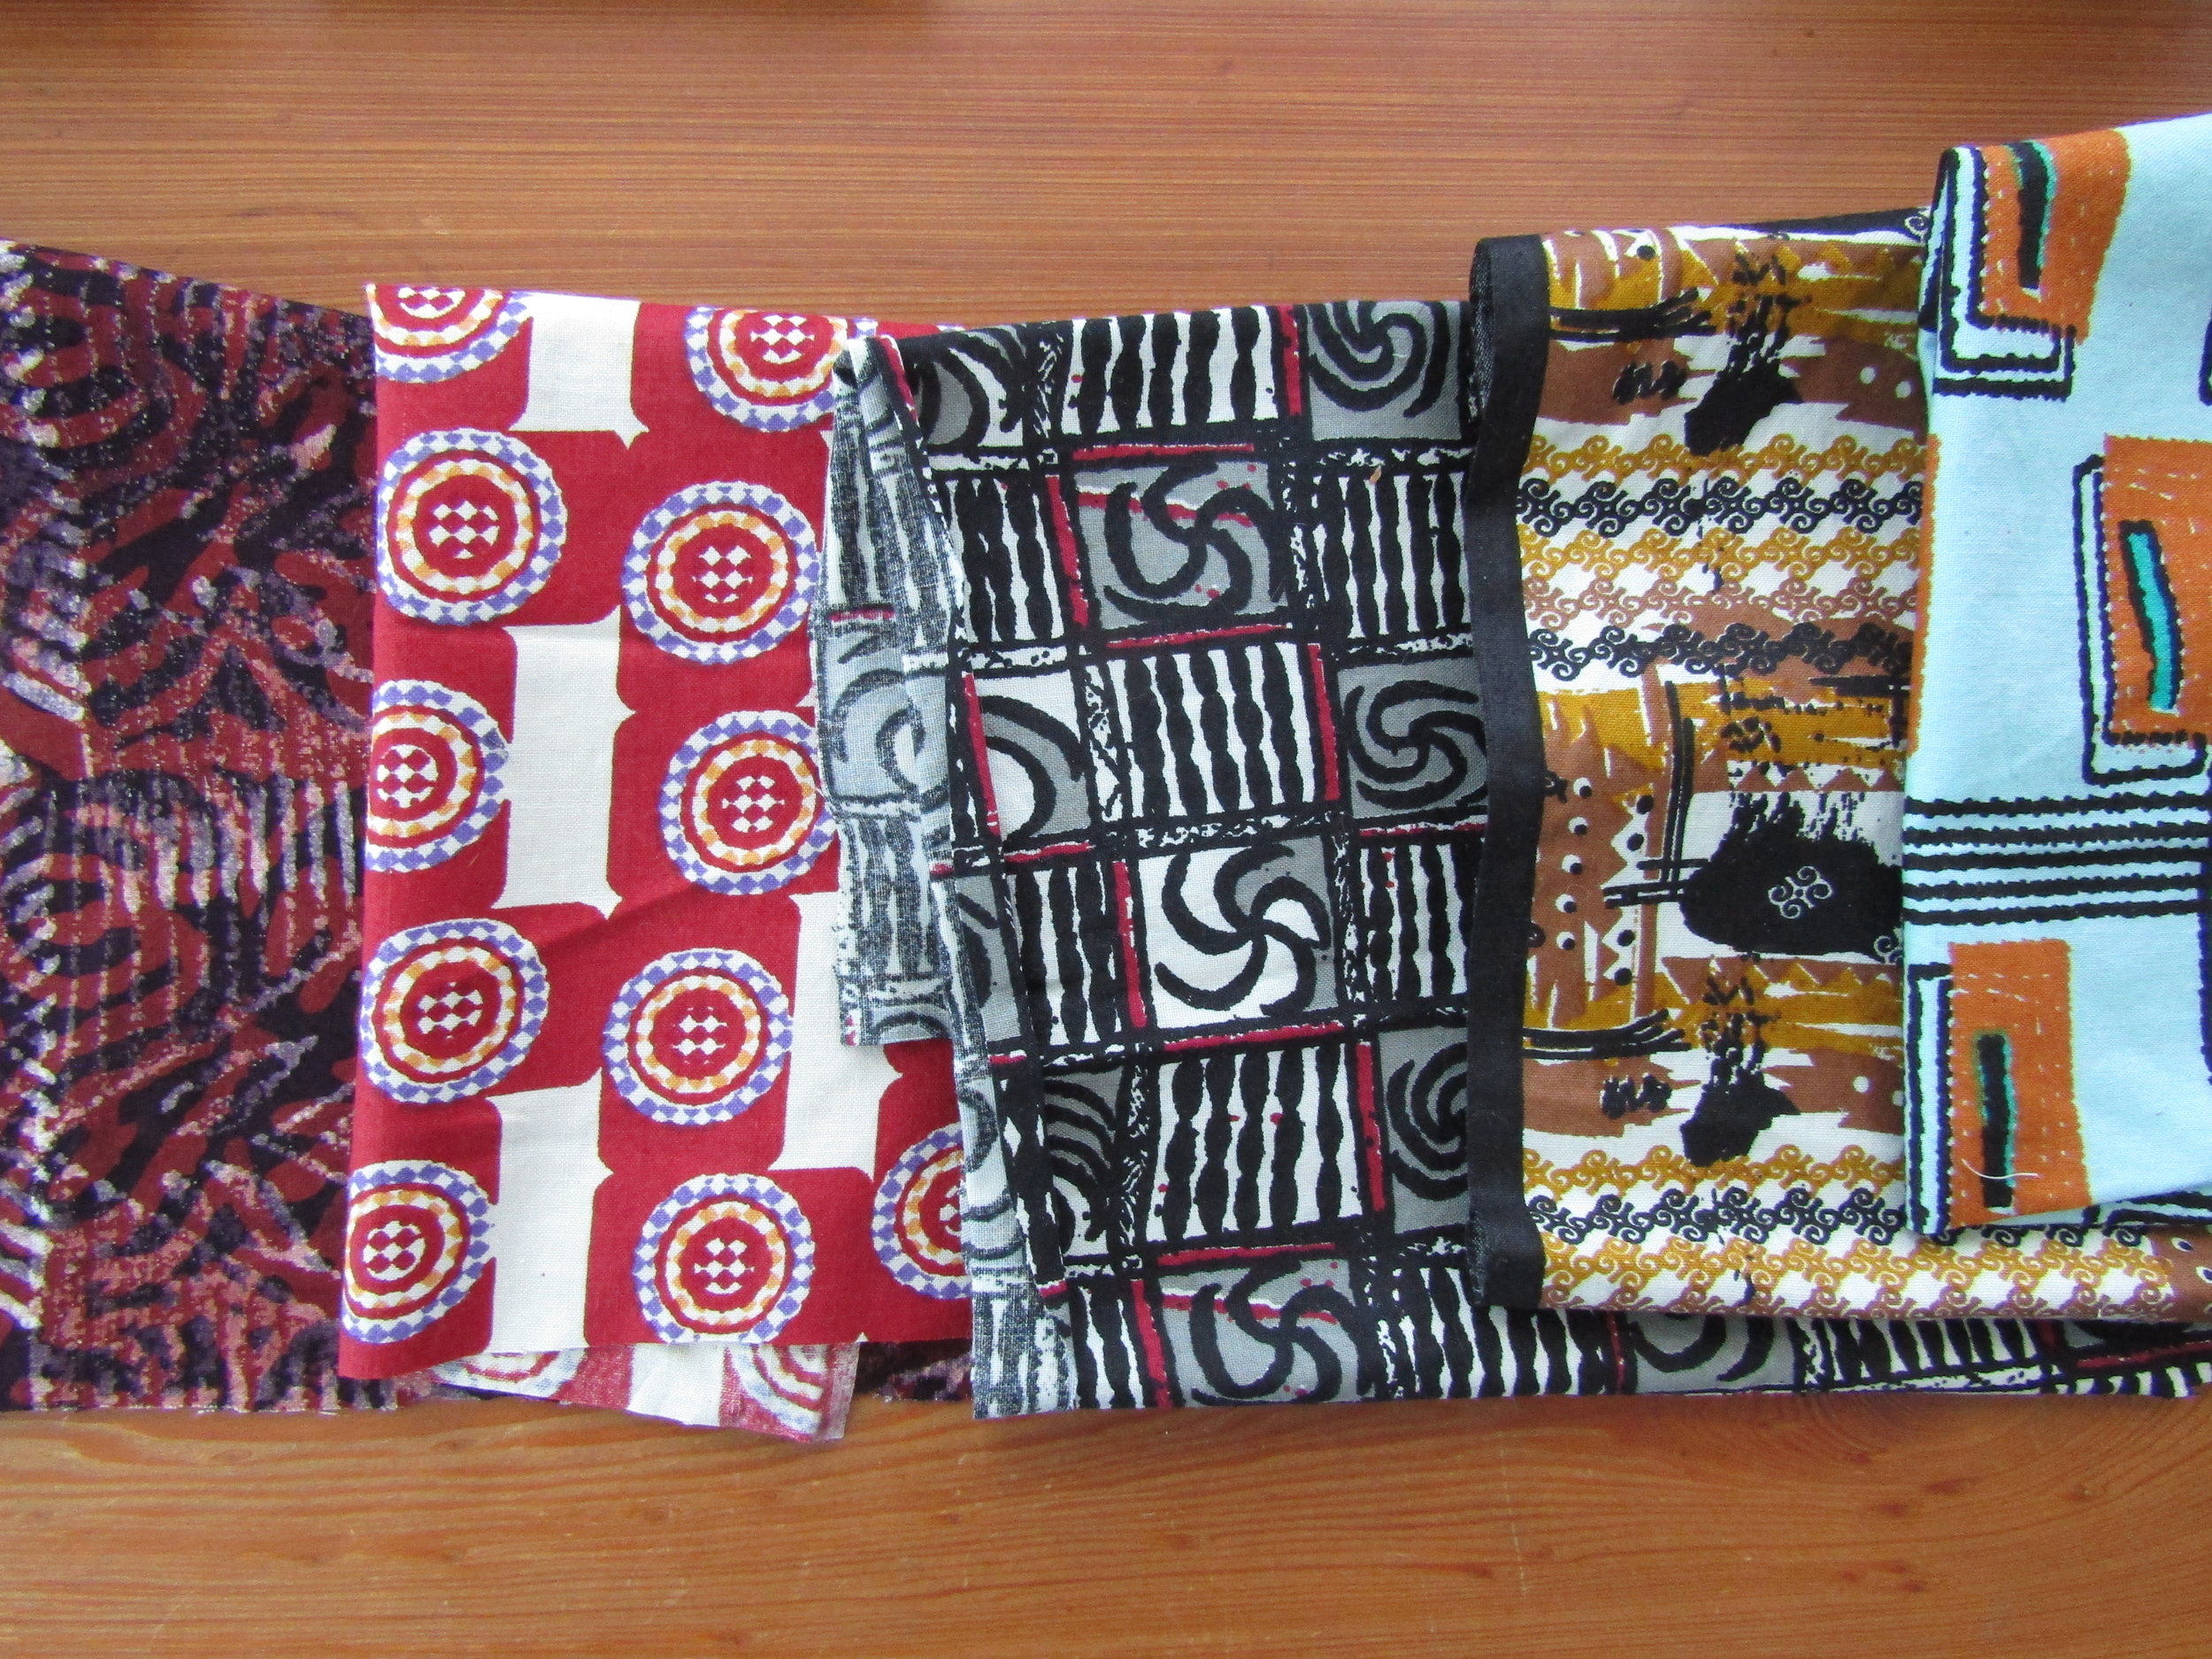 Fabrics from Ghana, purchased in 2013 while travelling there.